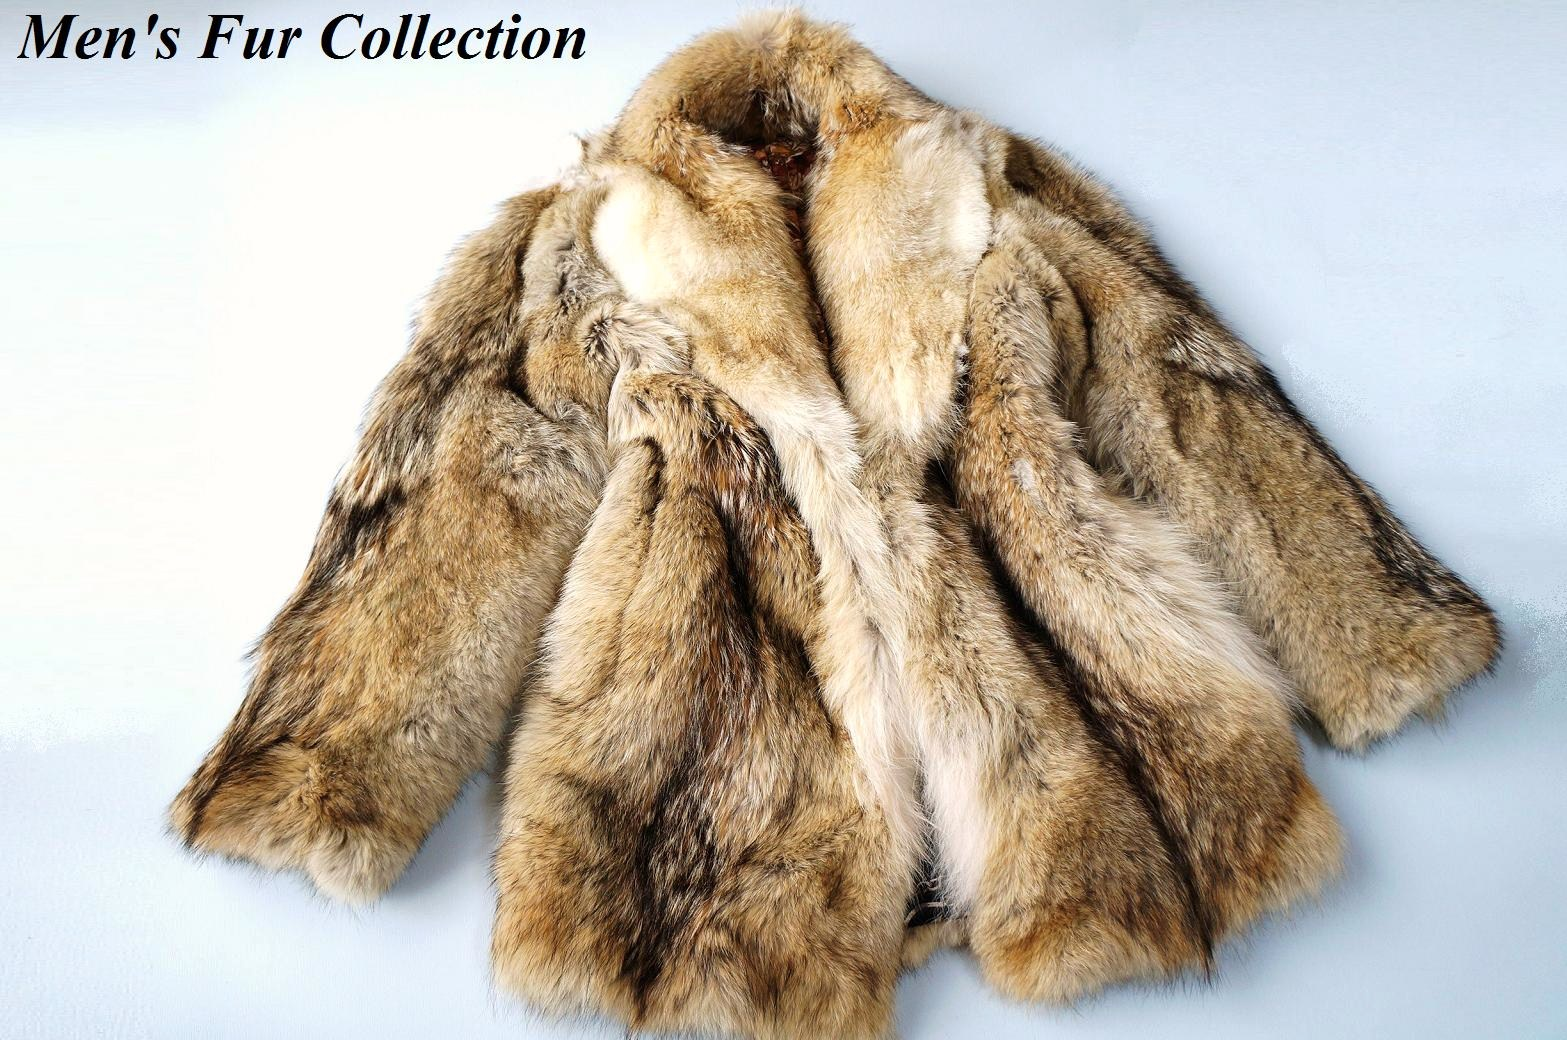 e-fur | Rakuten Global Market: SALE! In the men's prairie wolf fur ...